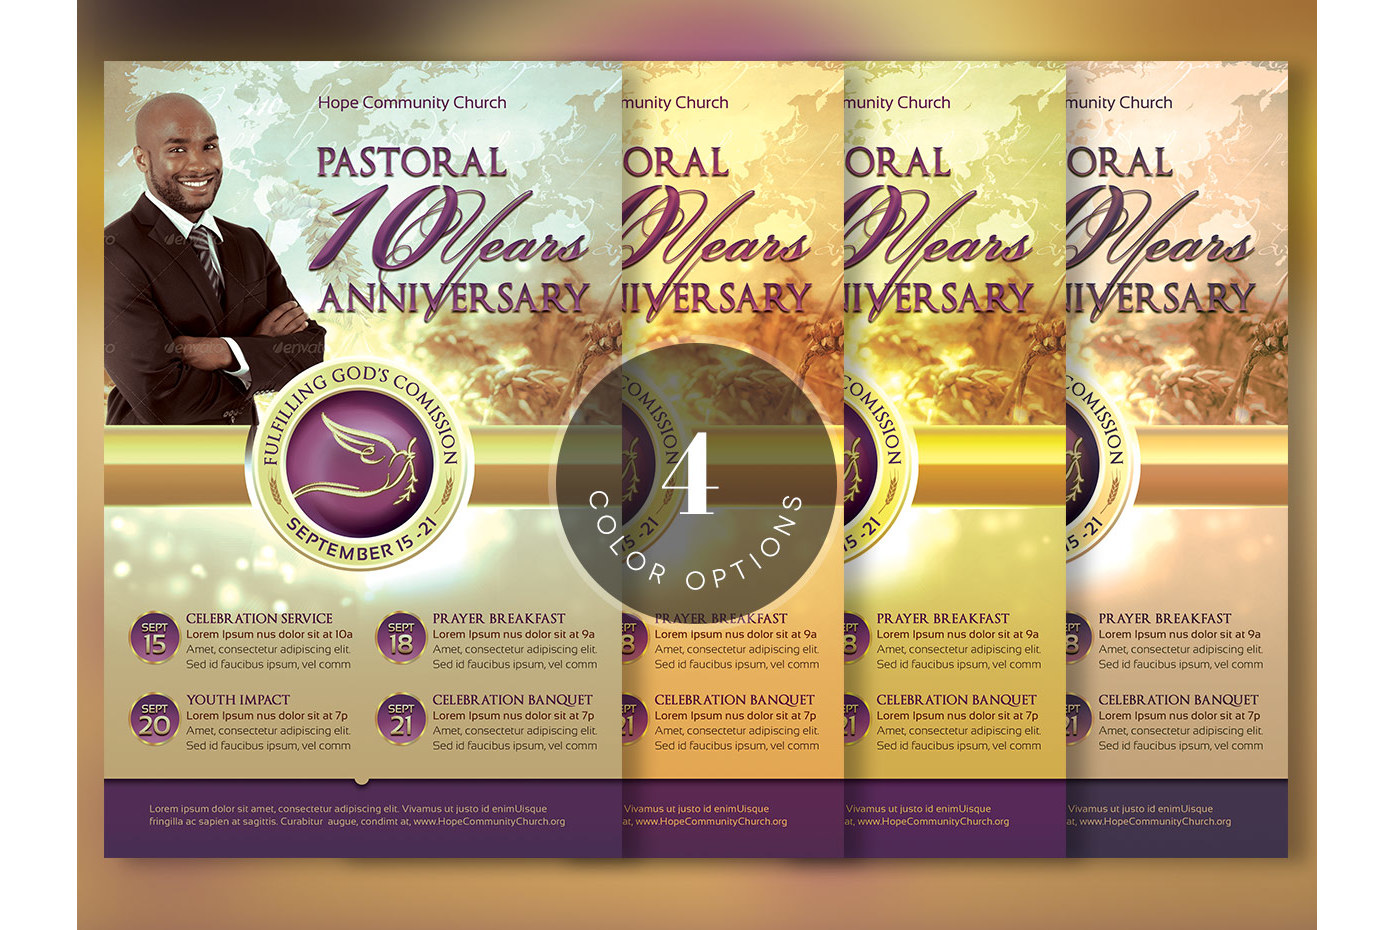 Clergy Anniversary Flyer Template example image 4